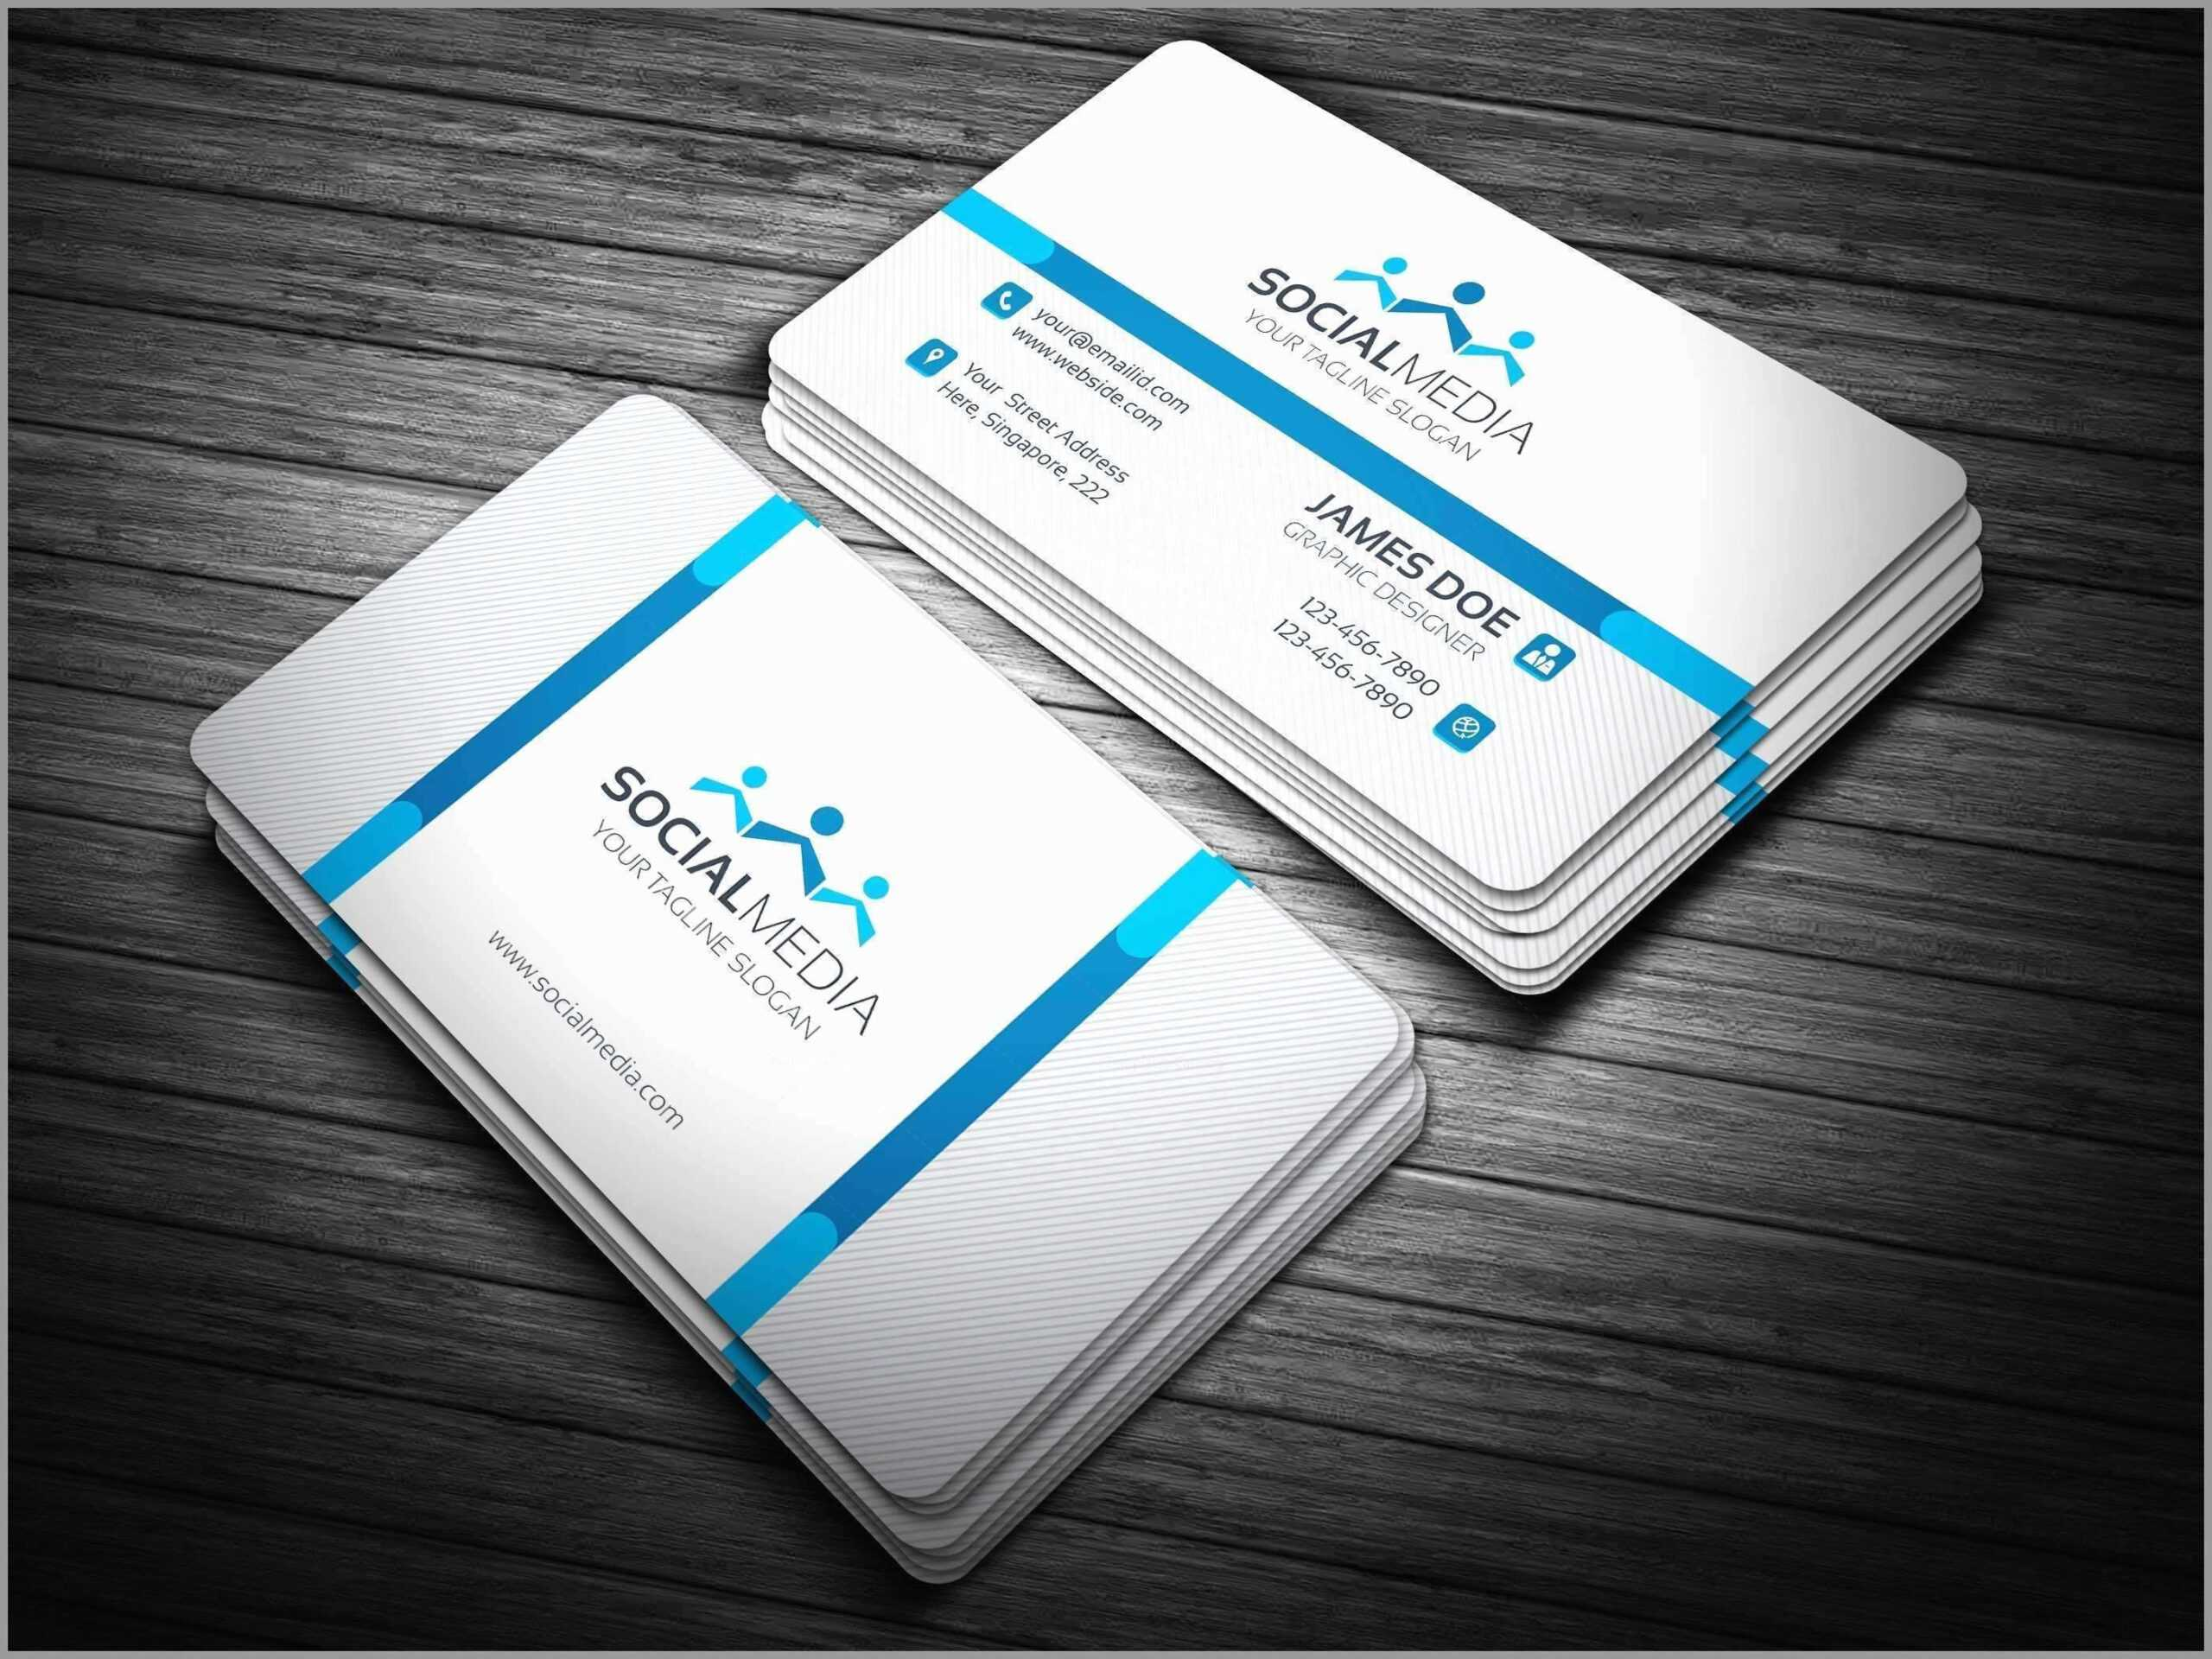 Esthetician Business Card Templates - Apocalomegaproductions In Rodan And Fields Business Card Template